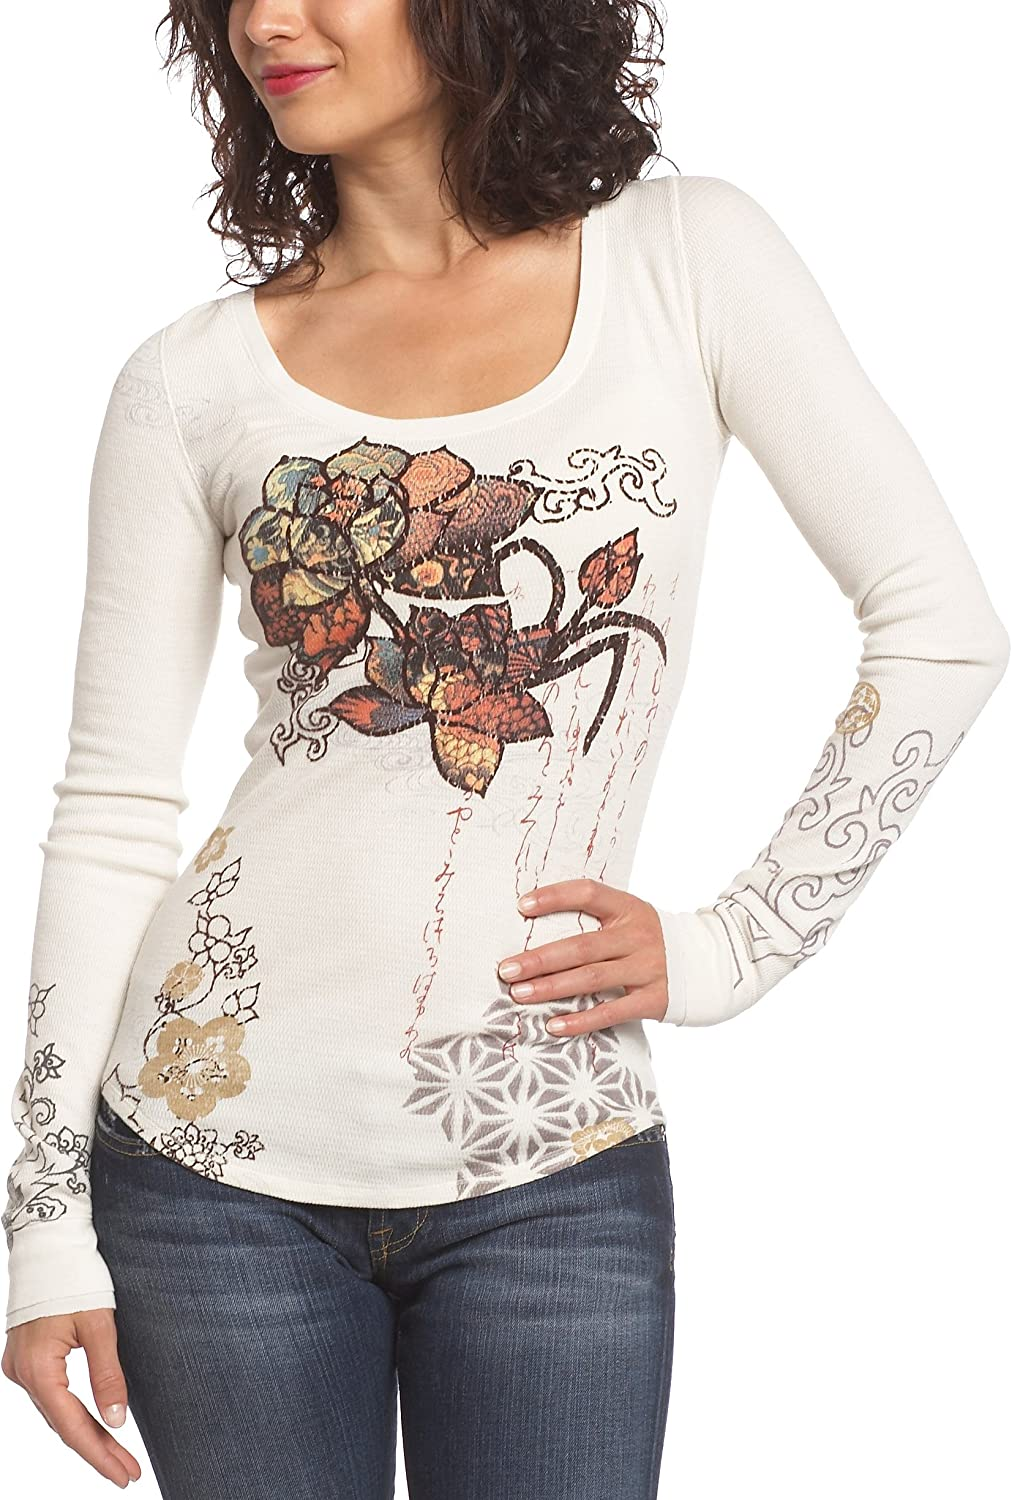 Lucky Brand Women's Tatto Flowers Thermal Top